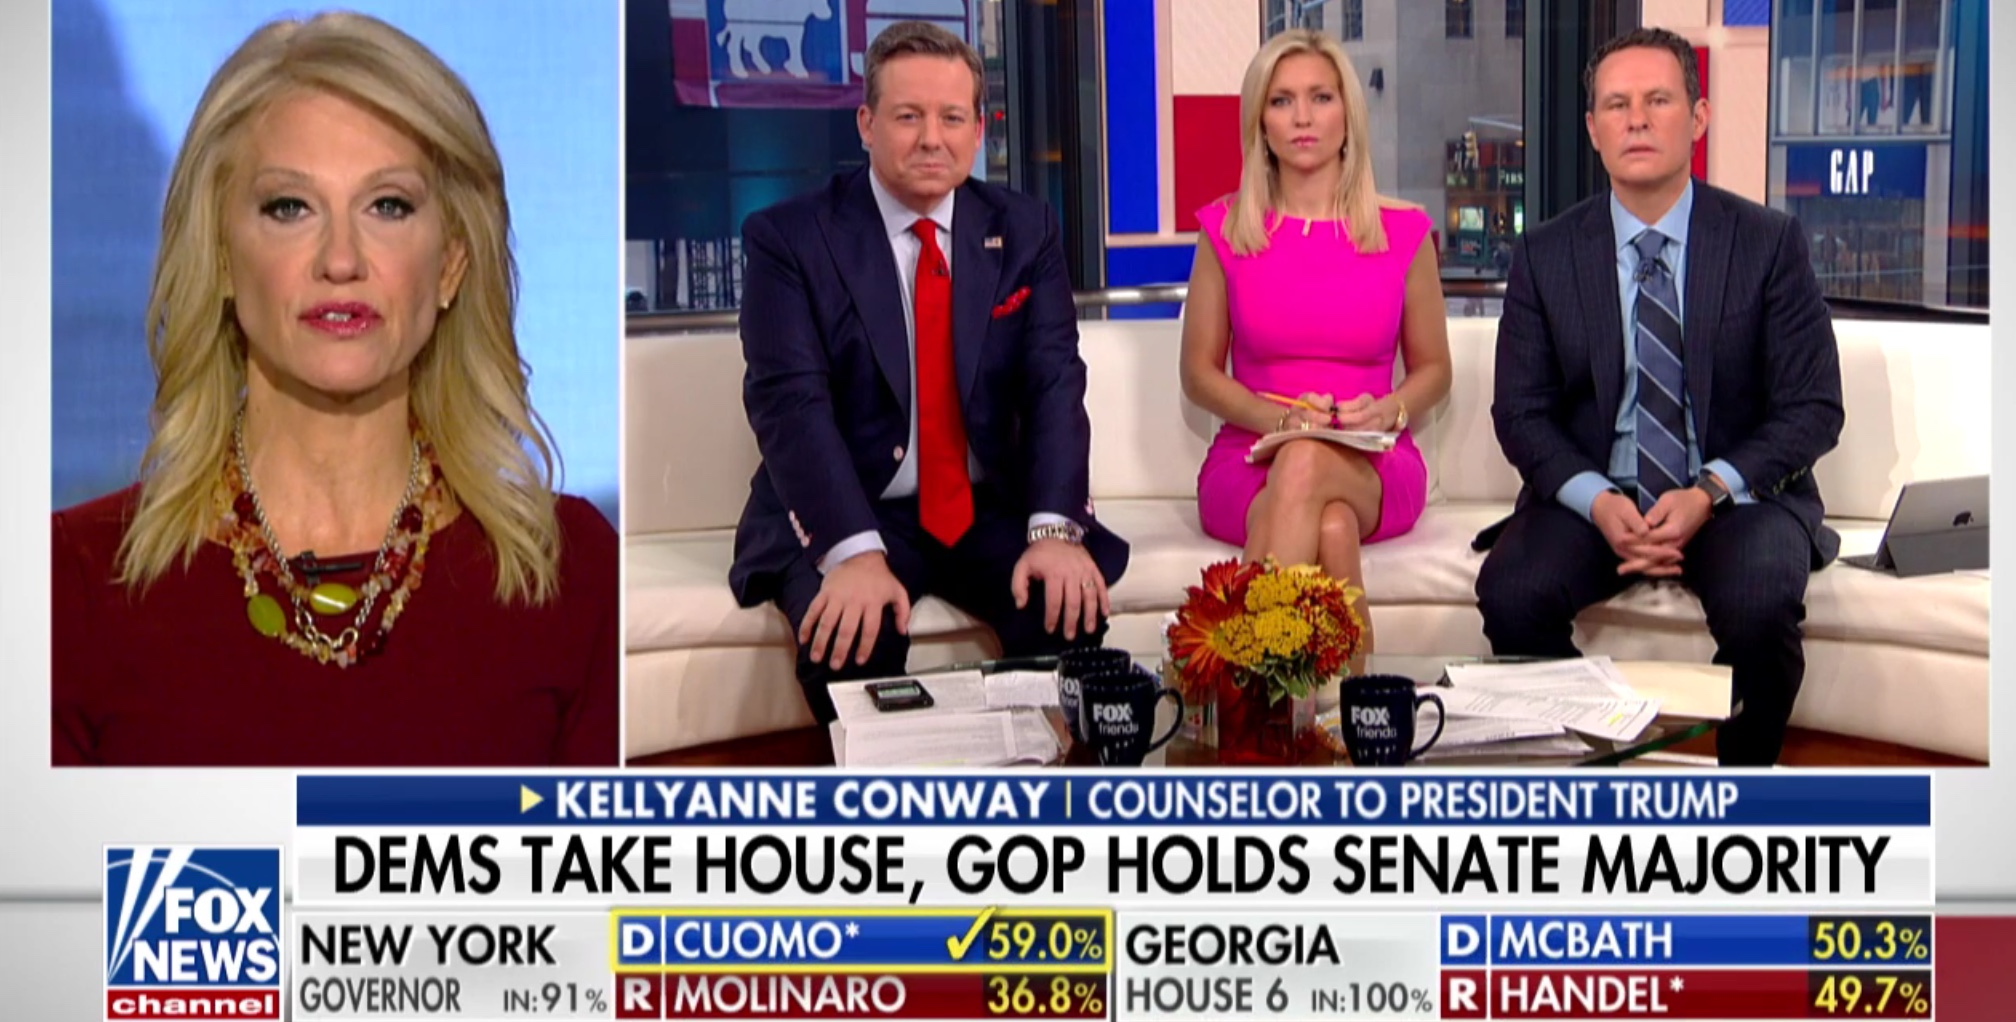 Kellyanne Conway appears on Fox & Friends to discuss midterm election results, Nov. 7, 2018. Fox News screenshot.